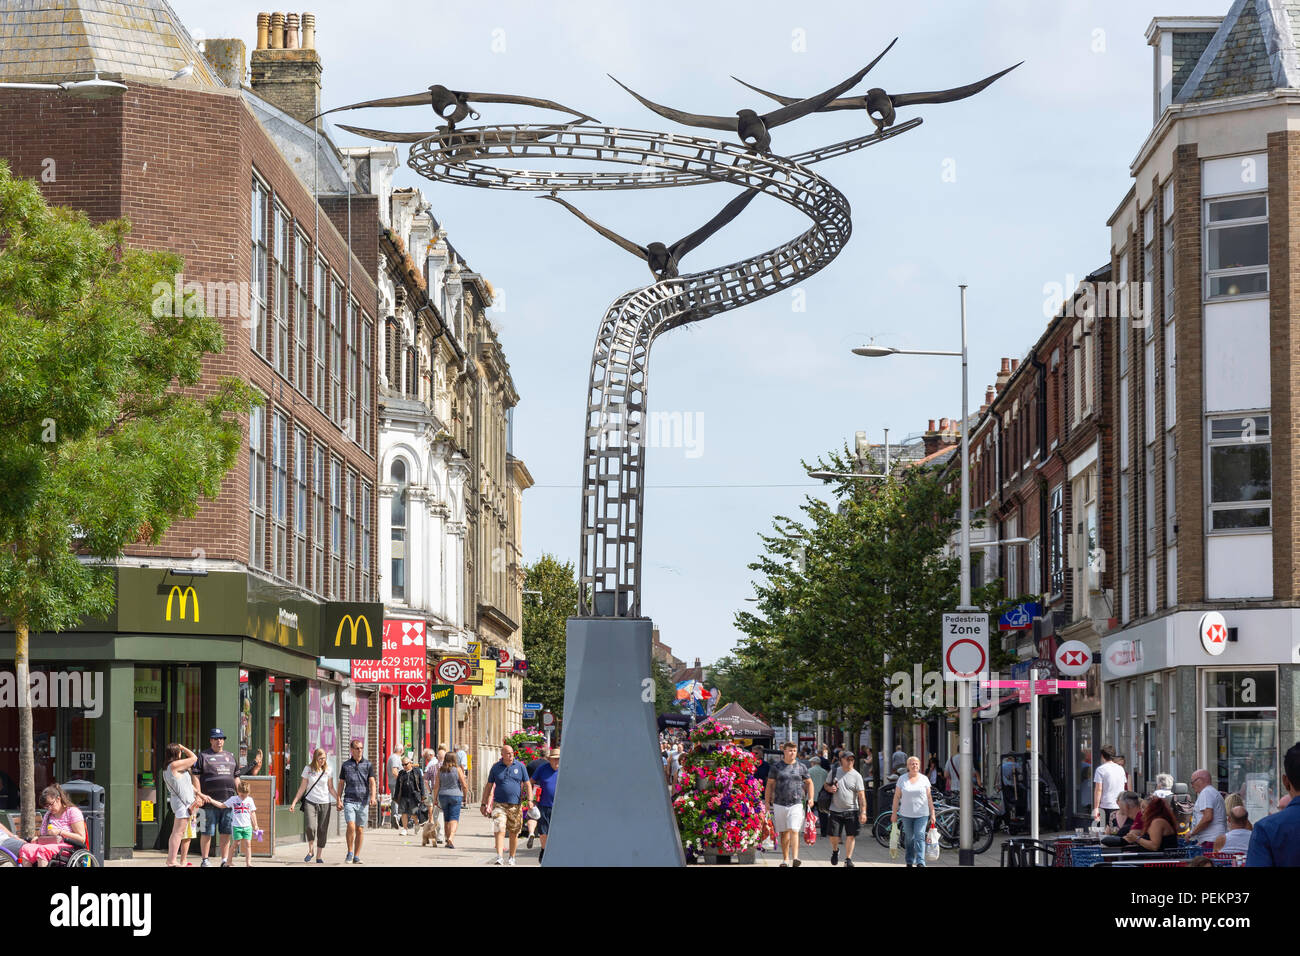 The Spirits of Lowestoft sculpture and London Road North, Station Square, Lowestoft, Suffolk, England, United Kingdom - Stock Image